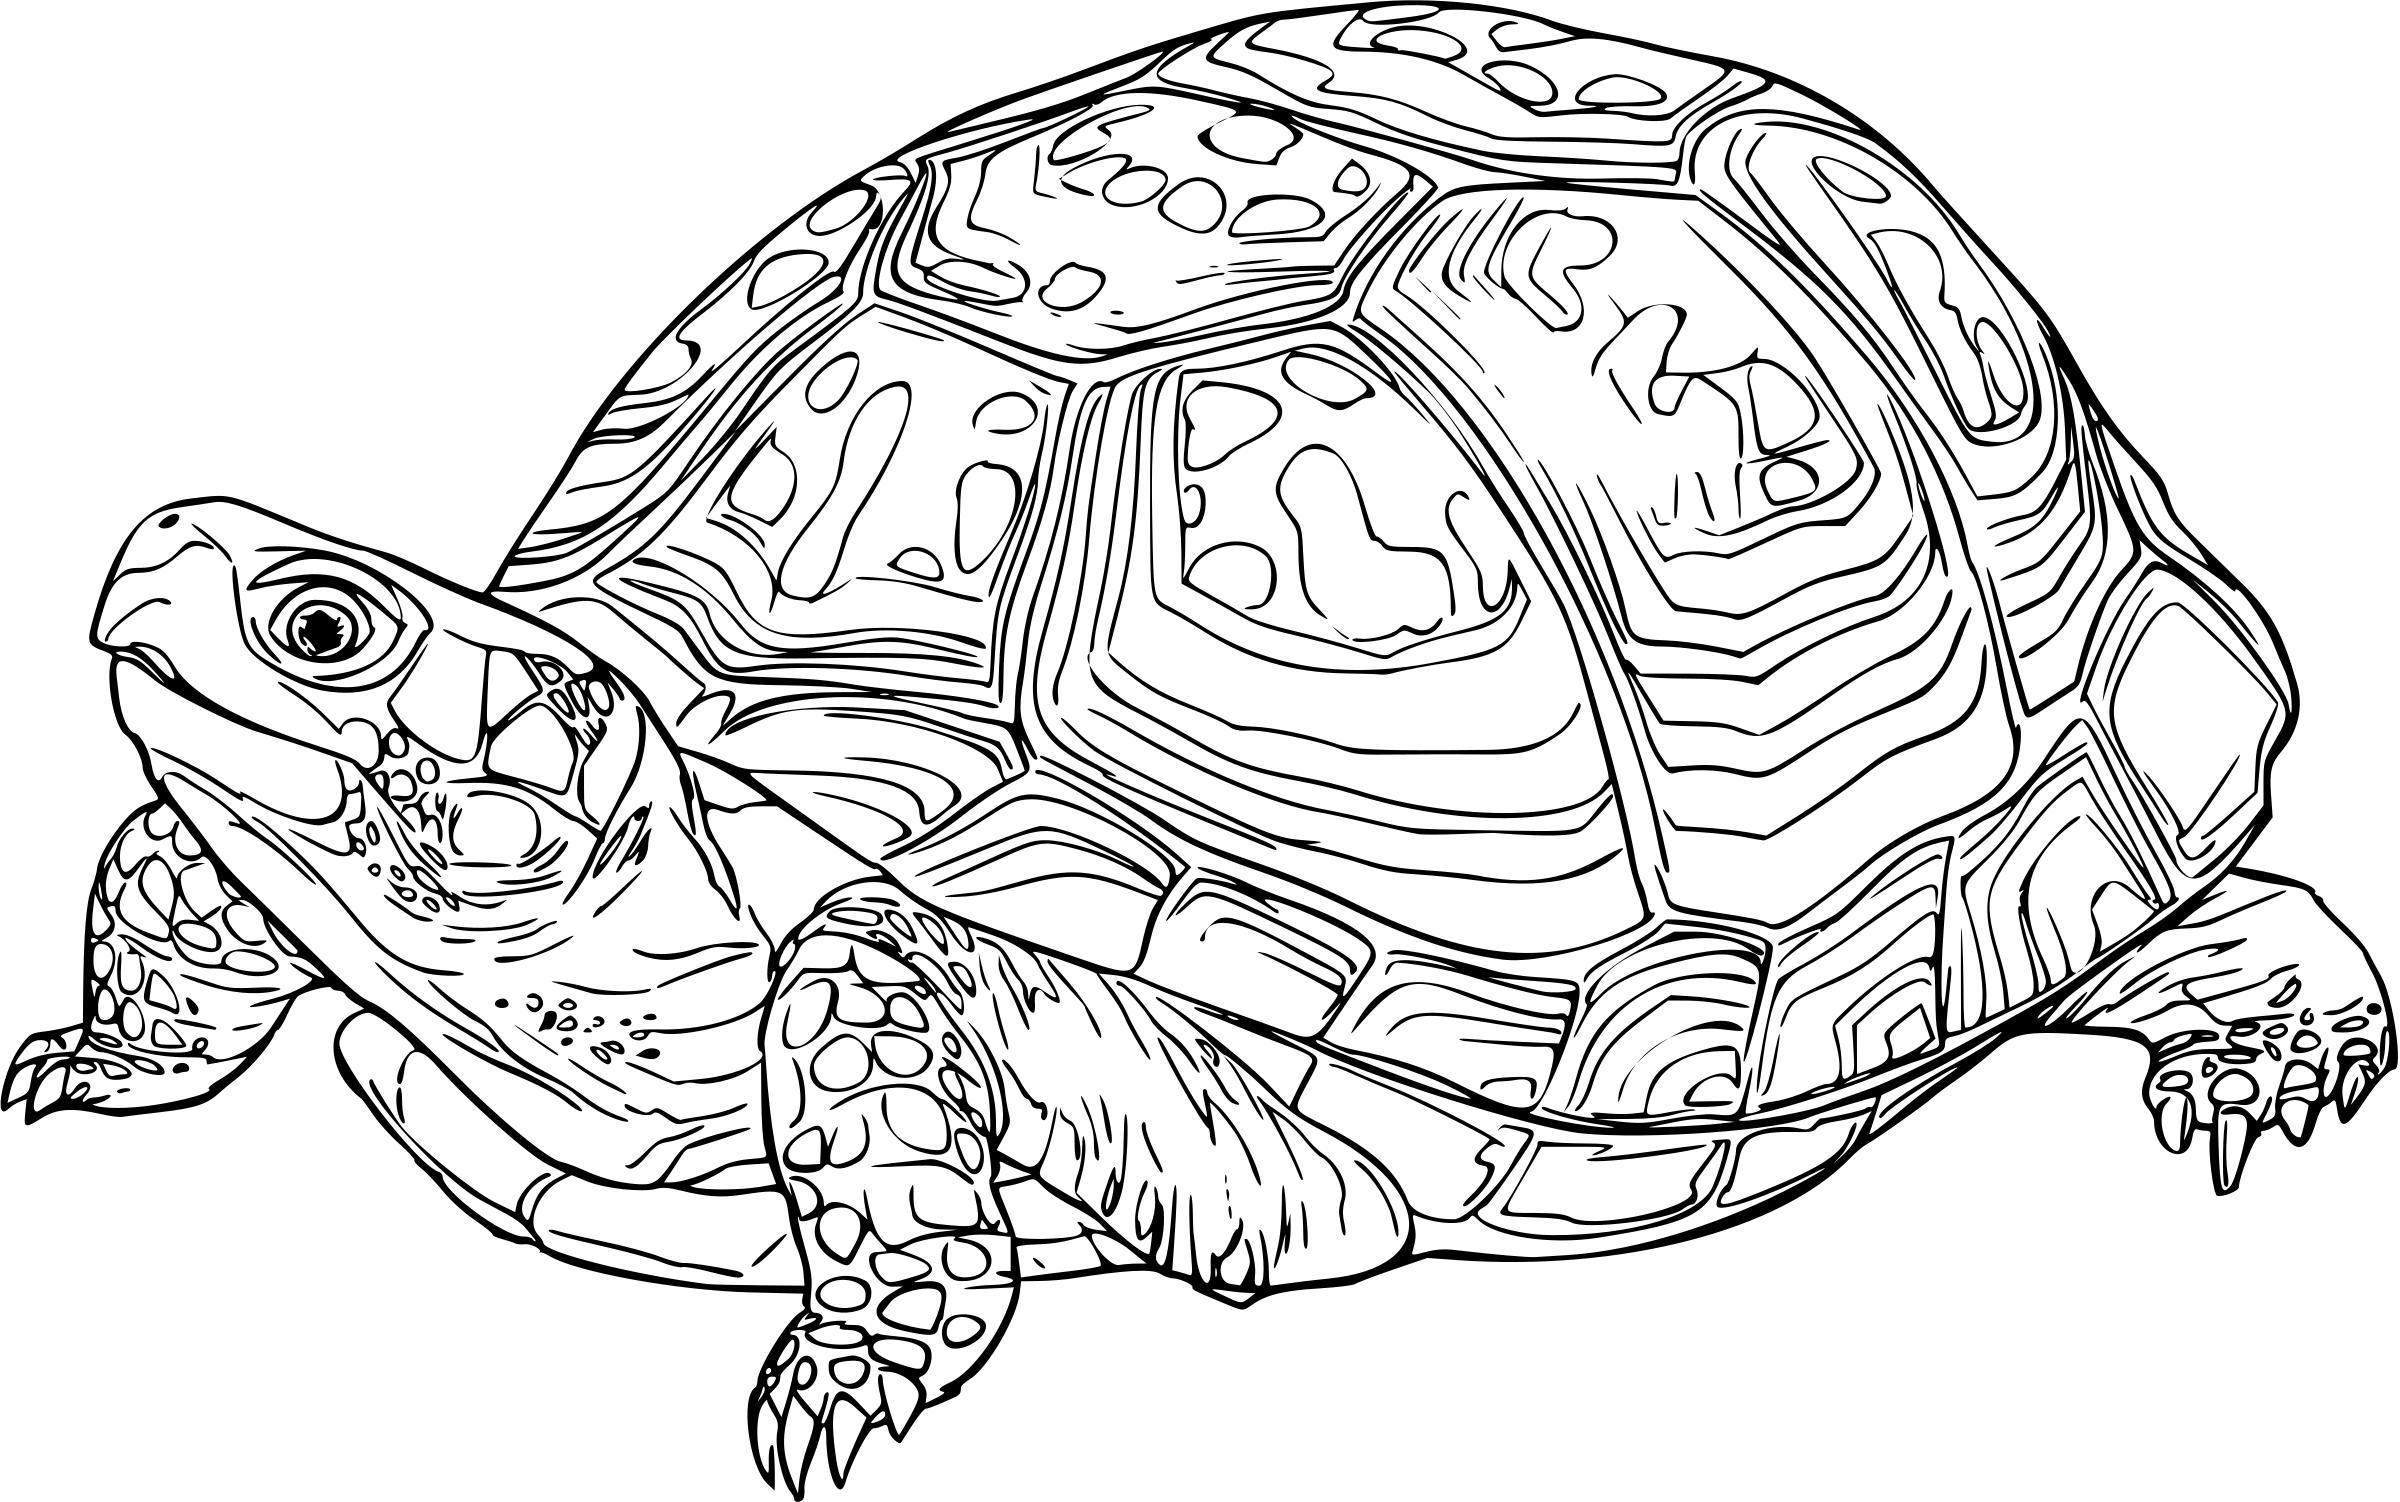 box turtle drawing at getdrawings com free for personal use box